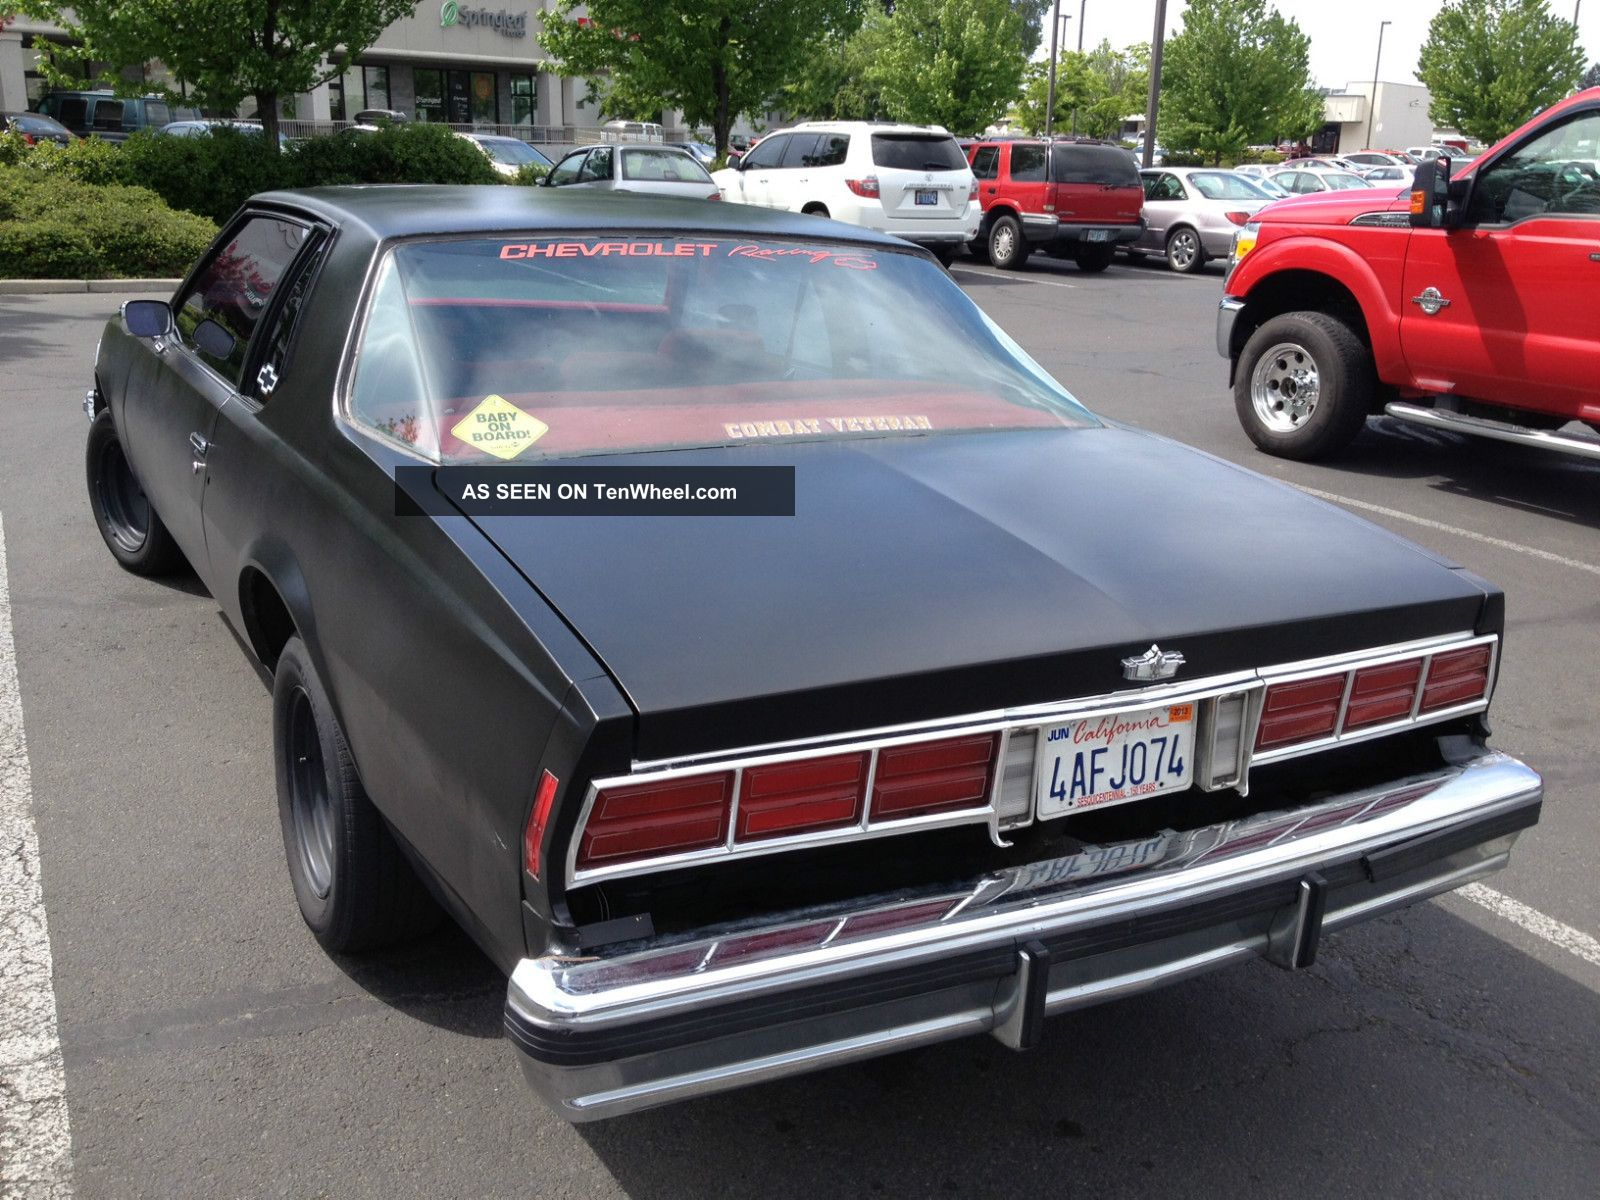 Chevrolet caprice classic 2door custom coupe pictures to pin on